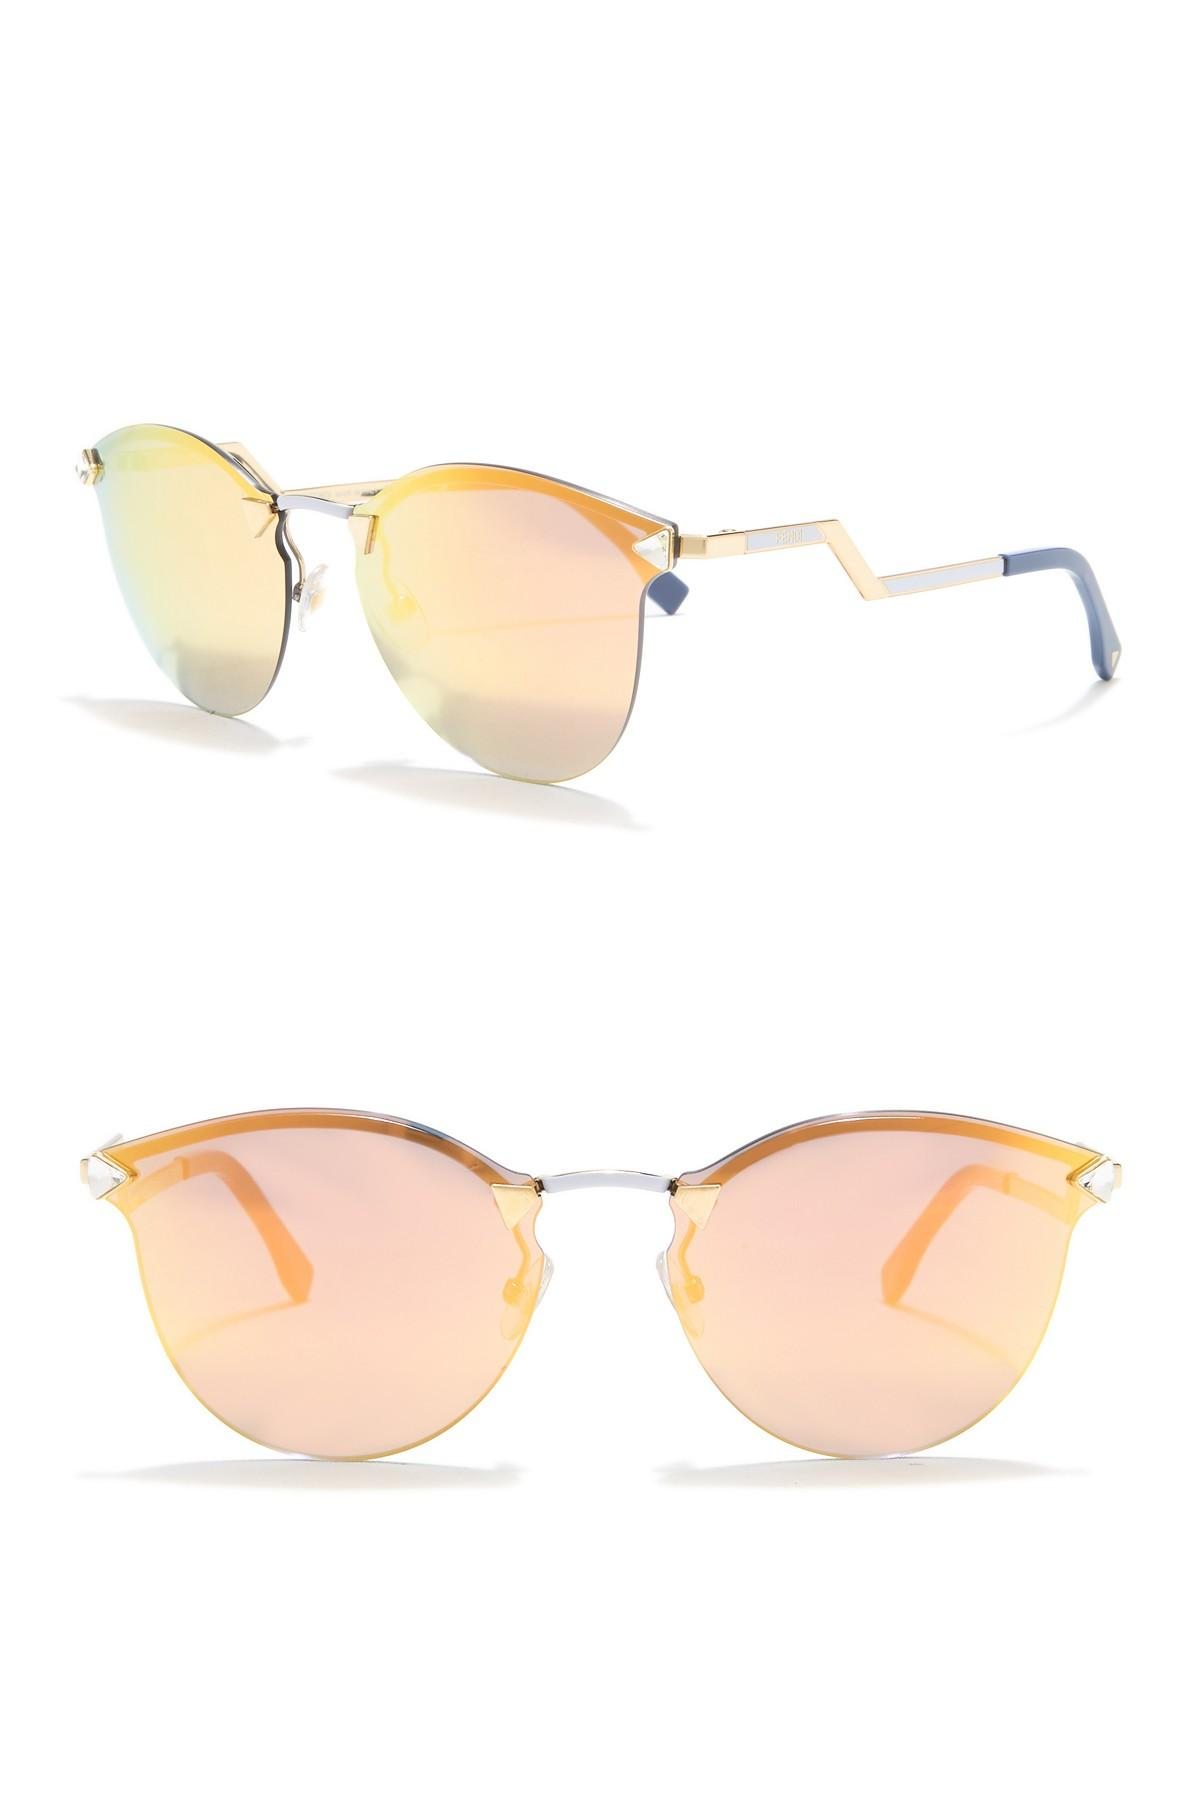 bae8a285cca8 Fendi. Women's 60mm Crystal Embellished Cat Eye Sunglasses. $490 $120 From Nordstrom  Rack. Free shipping with Nordstrom Rack on orders over ...